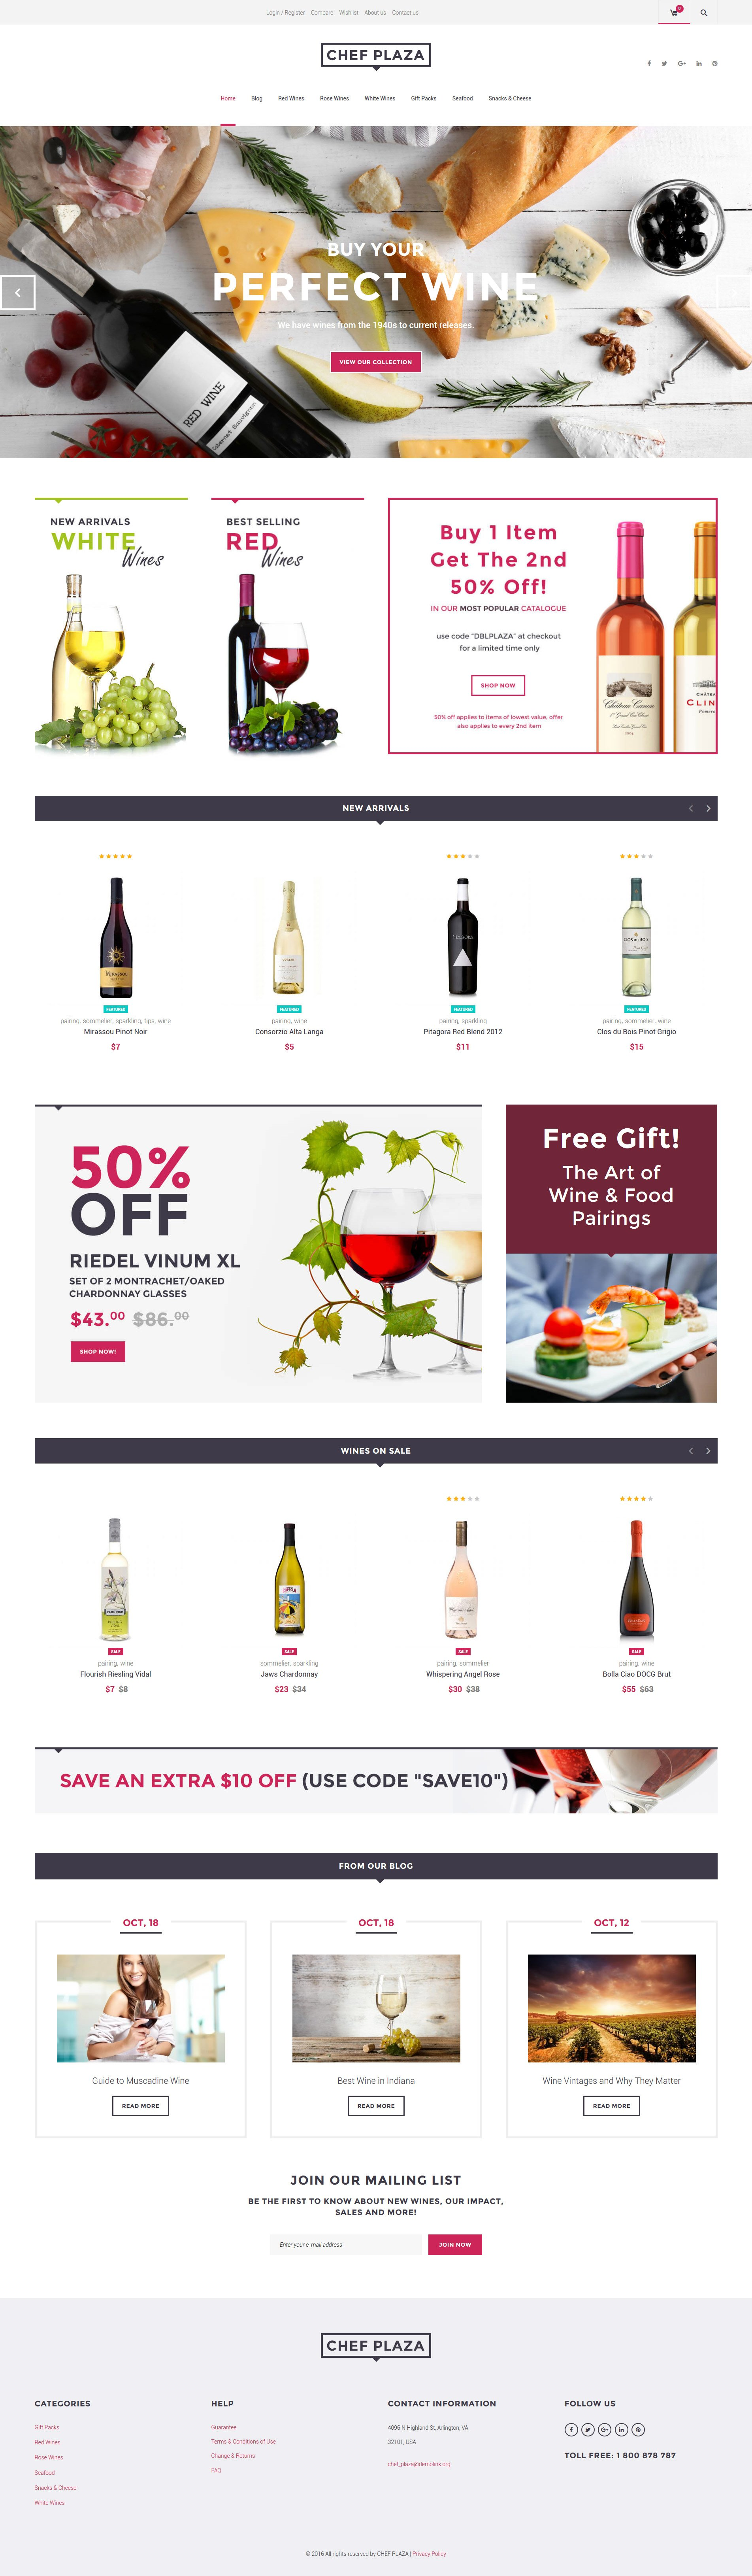 Chef Plaza Food And Wine Store №61302 - скриншот